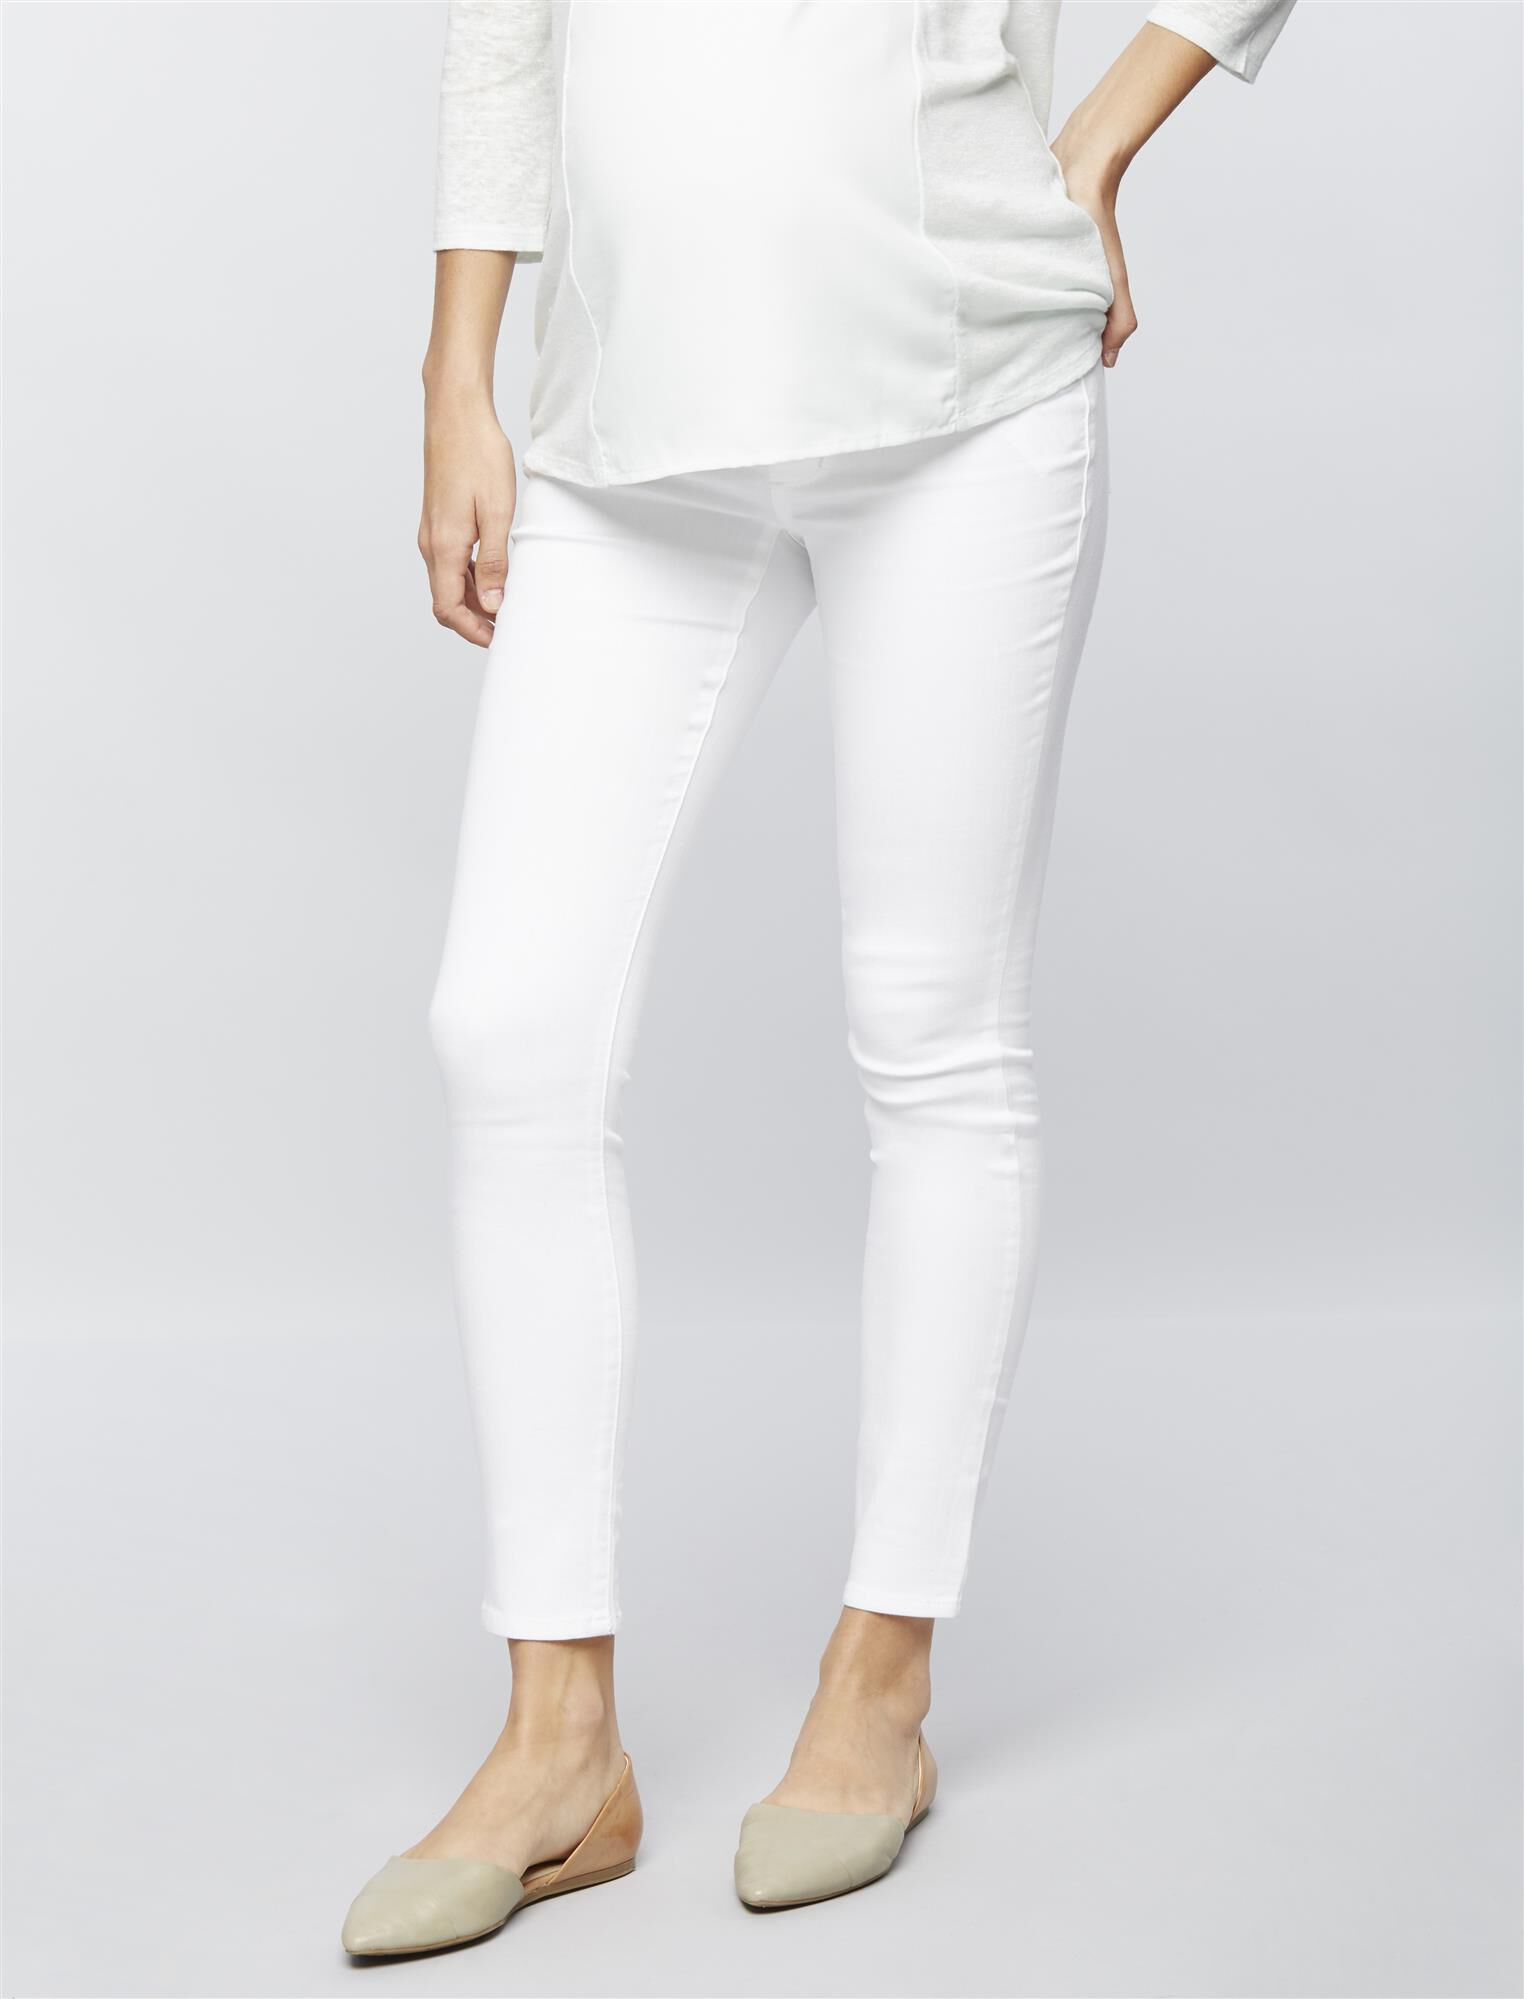 Luxe Essentials Denim Secret Fit Belly Skinny Ankle Maternity Jeans